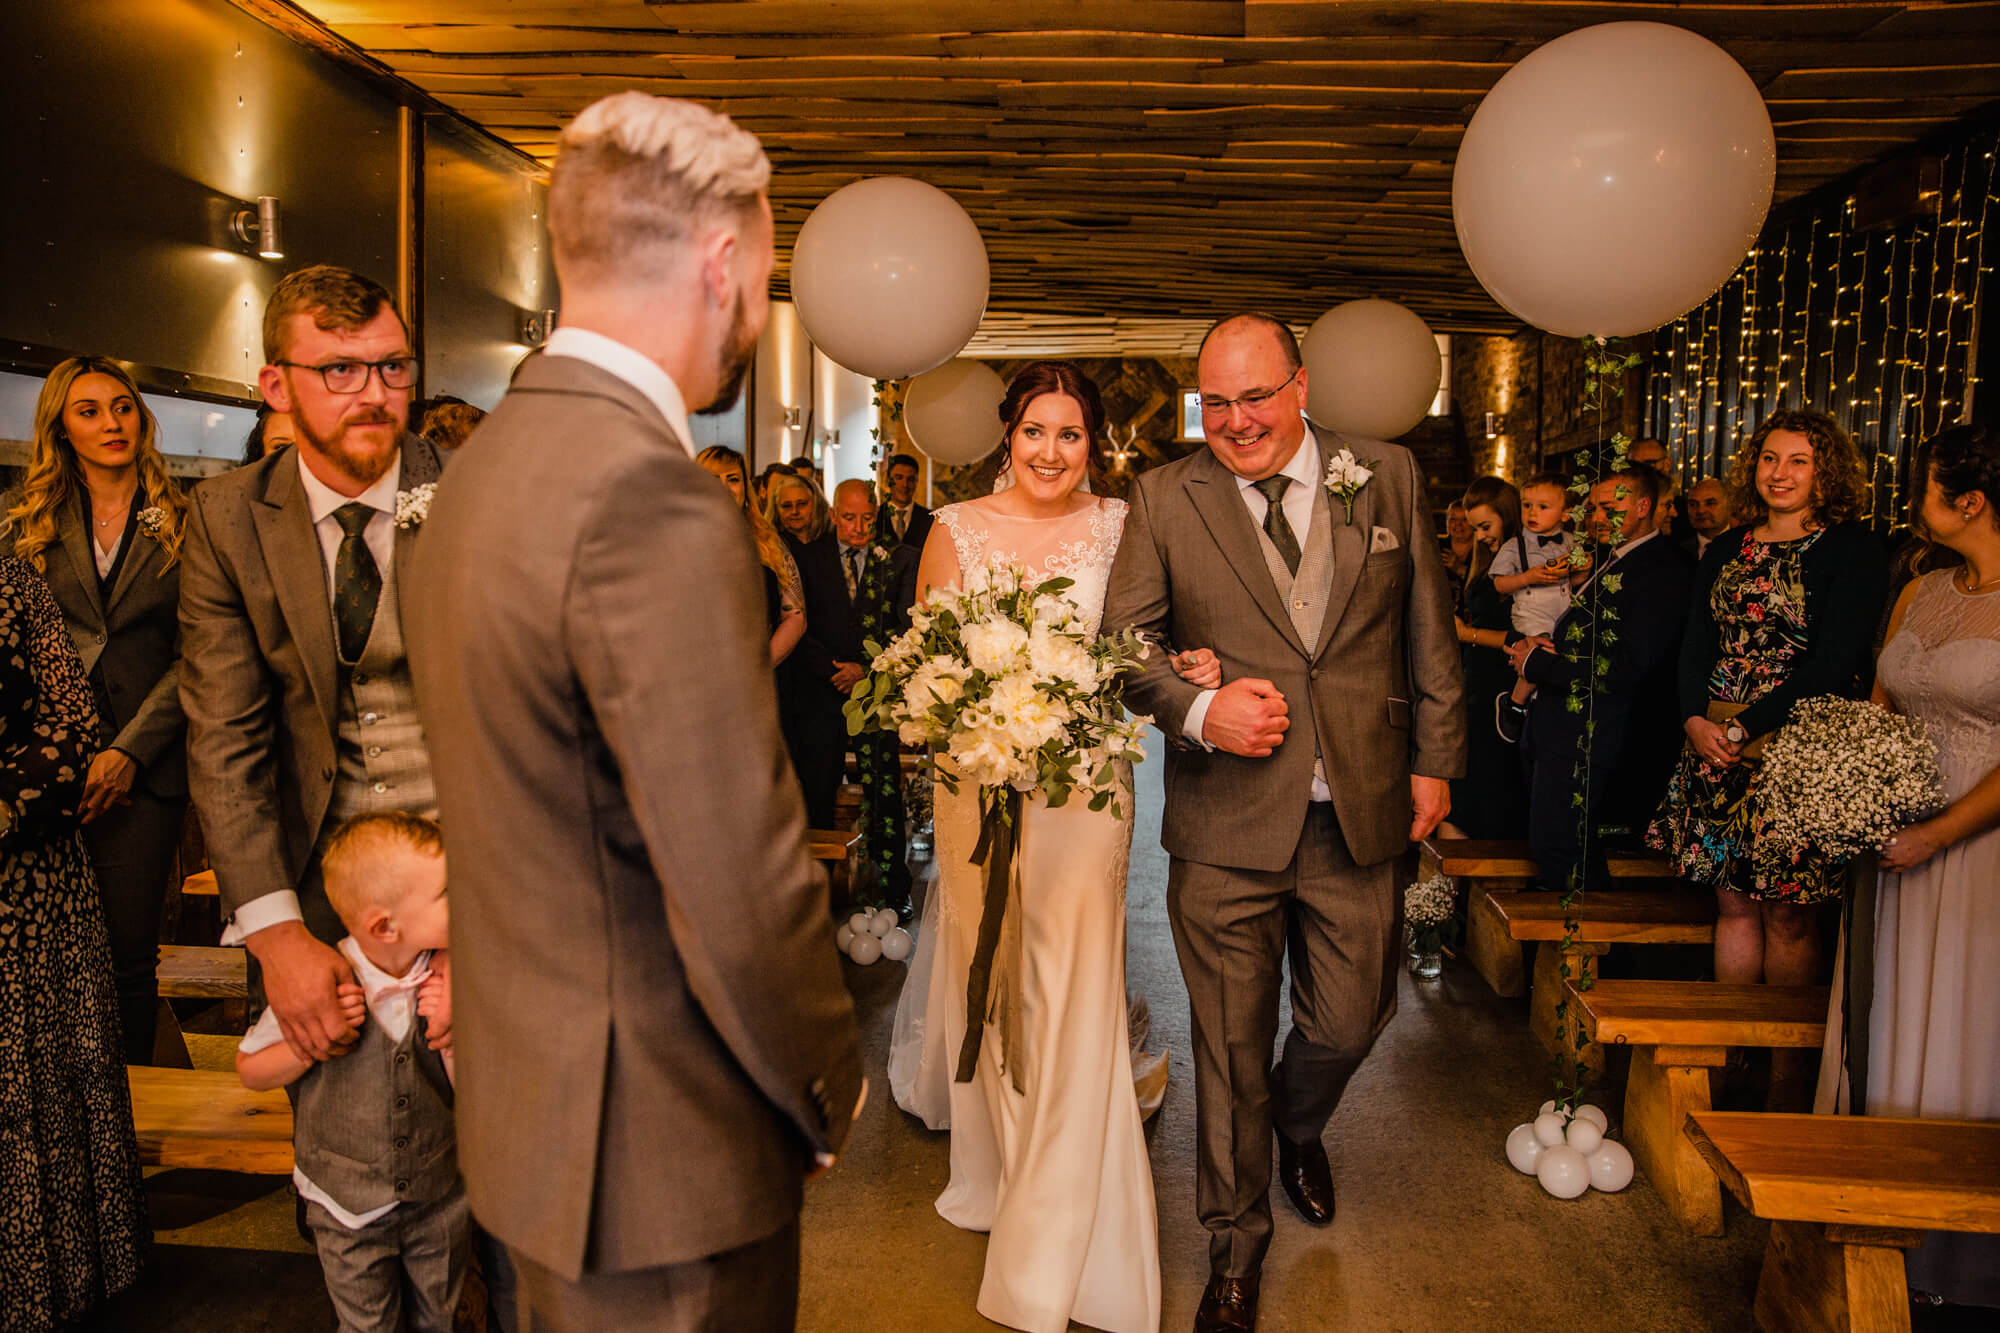 father of bride walks daughter down aisle to wedding processional as groom looks on in foreground